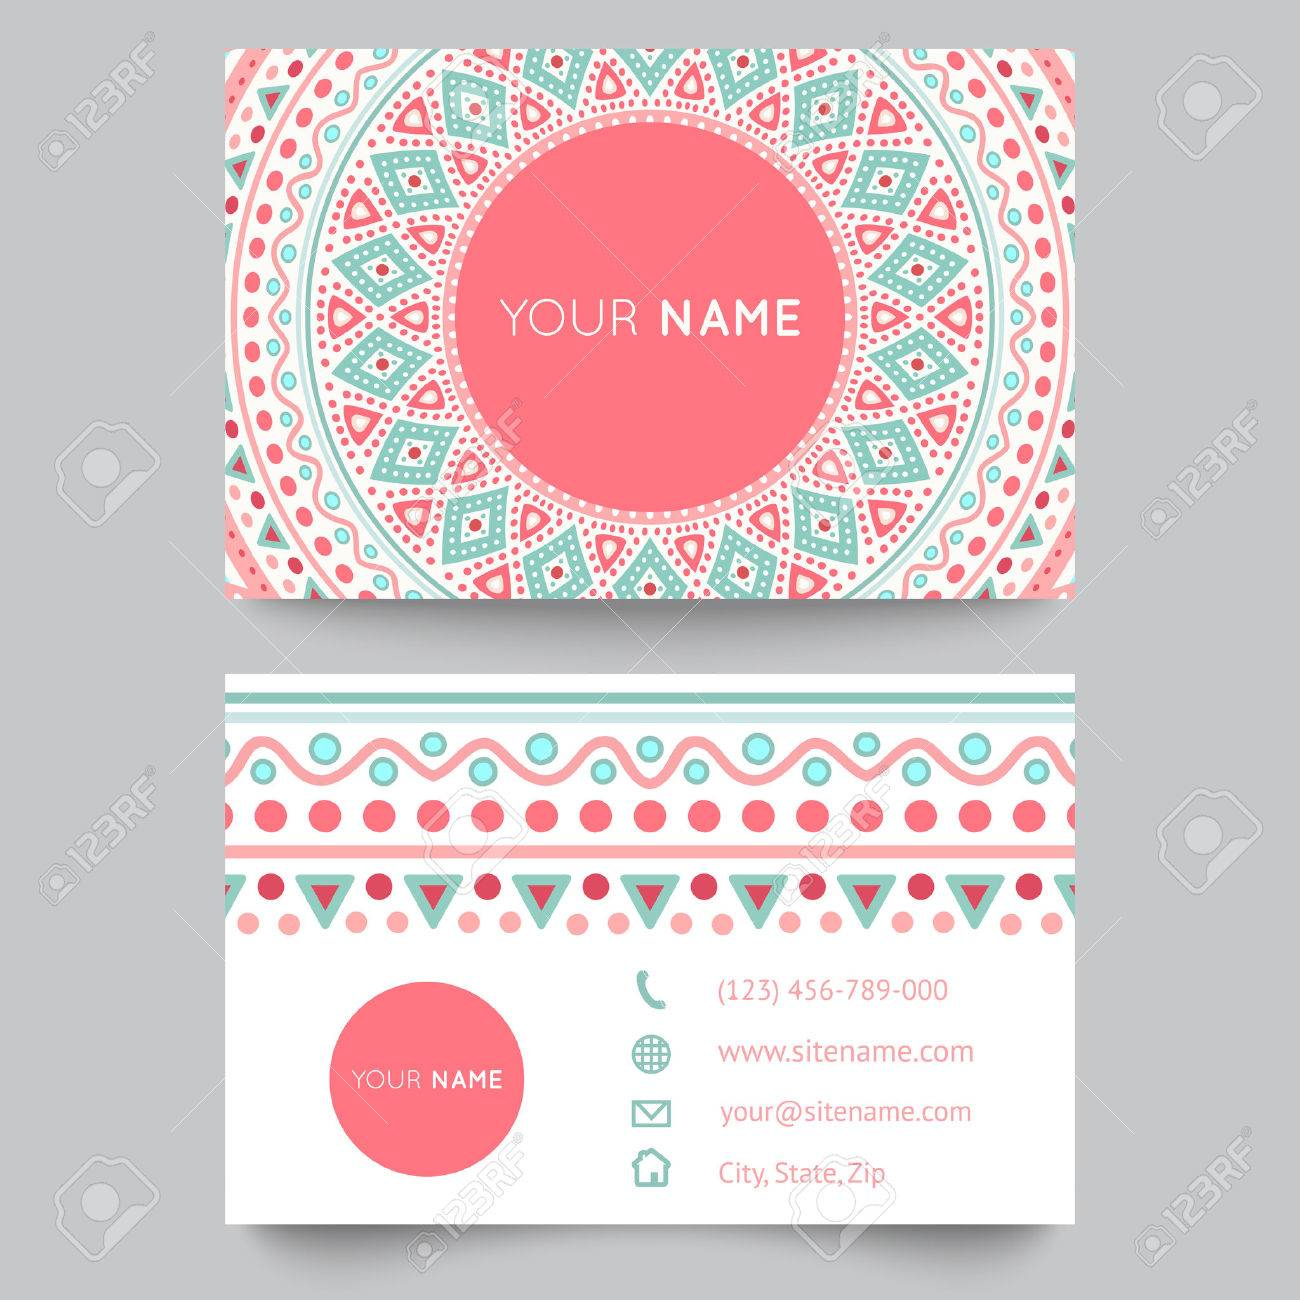 Business Card Template, Blue, White And Pink Beauty Fashion Pattern ...